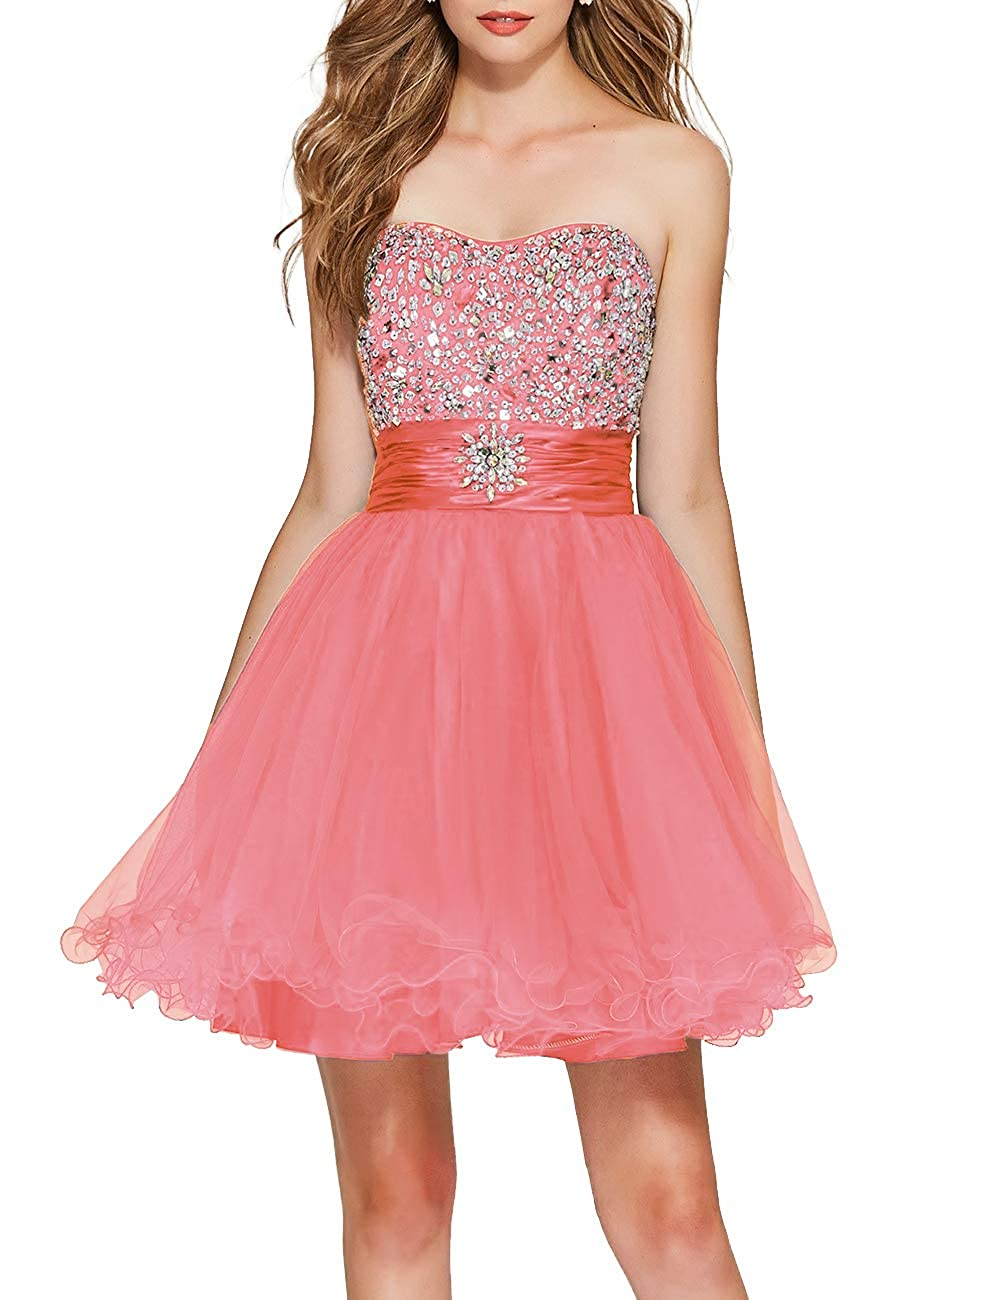 Coral Uther Girls Sweetheart Bridesmaid Dresses Beaded Homecoming Dress Short Prom Gown